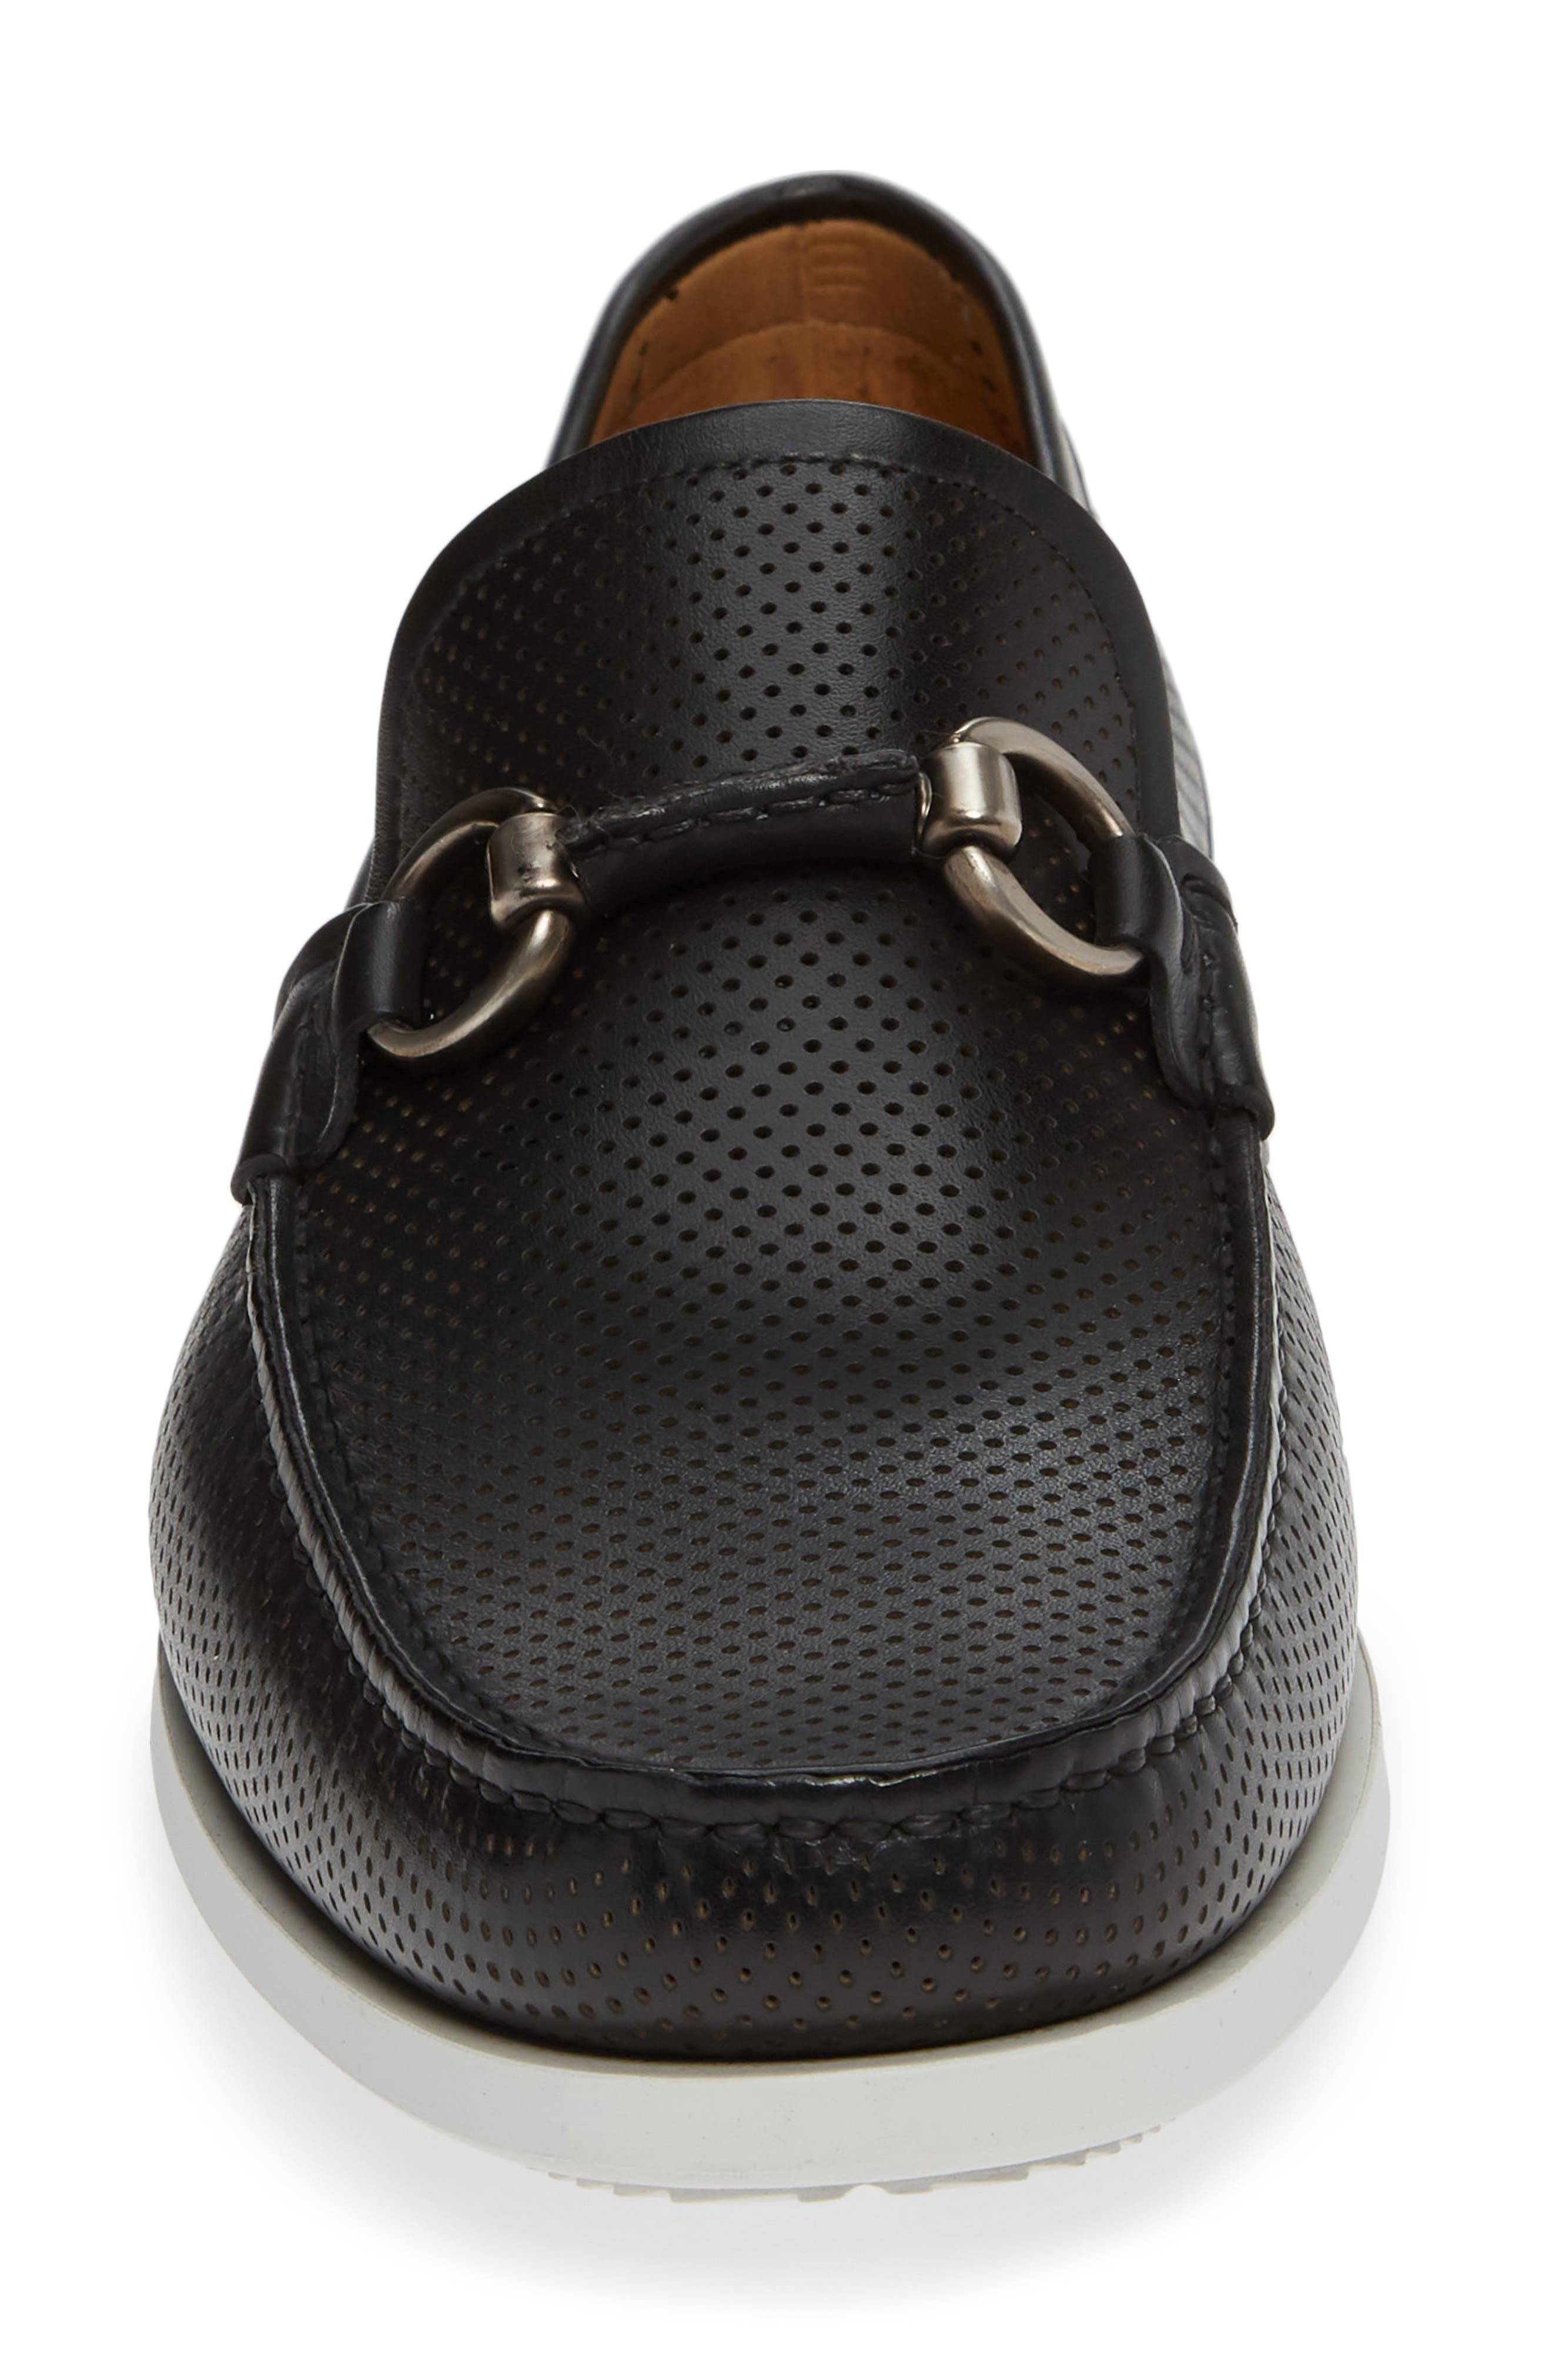 Beasley Perforated Moc Toe Bit Loafer,                             Alternate thumbnail 4, color,                             BLACK LEATHER